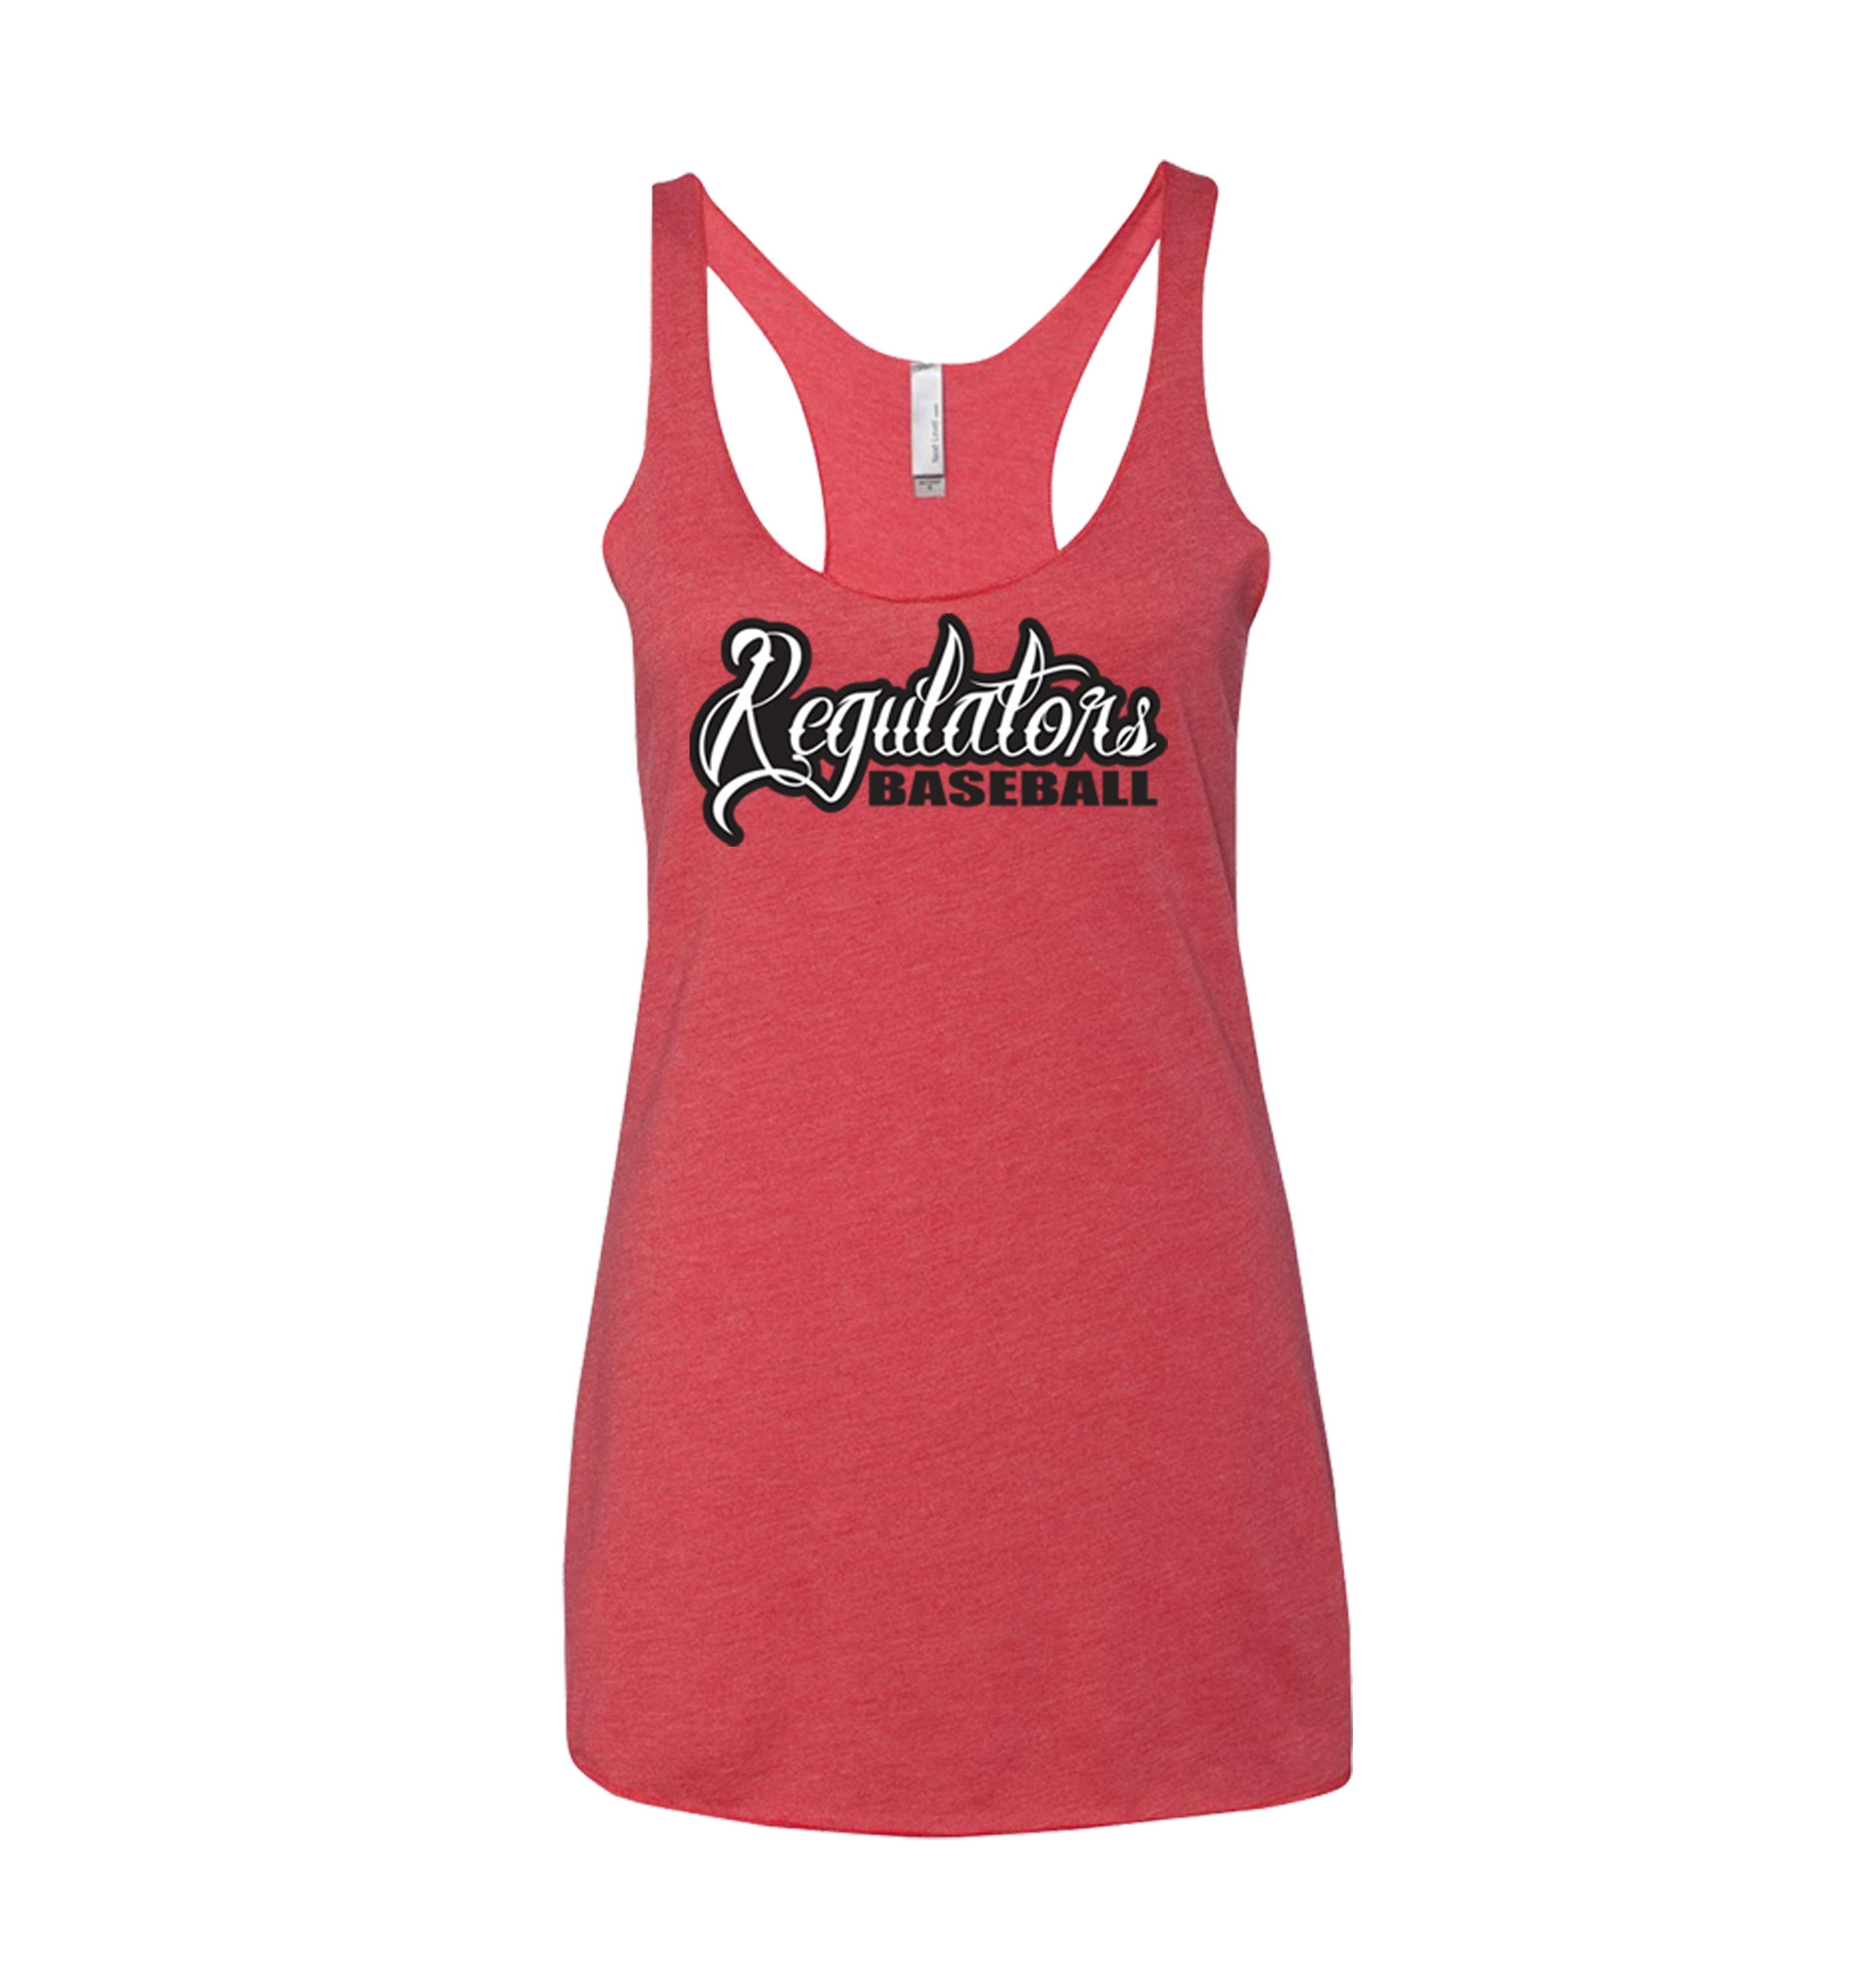 Regulators Baseball Racerback